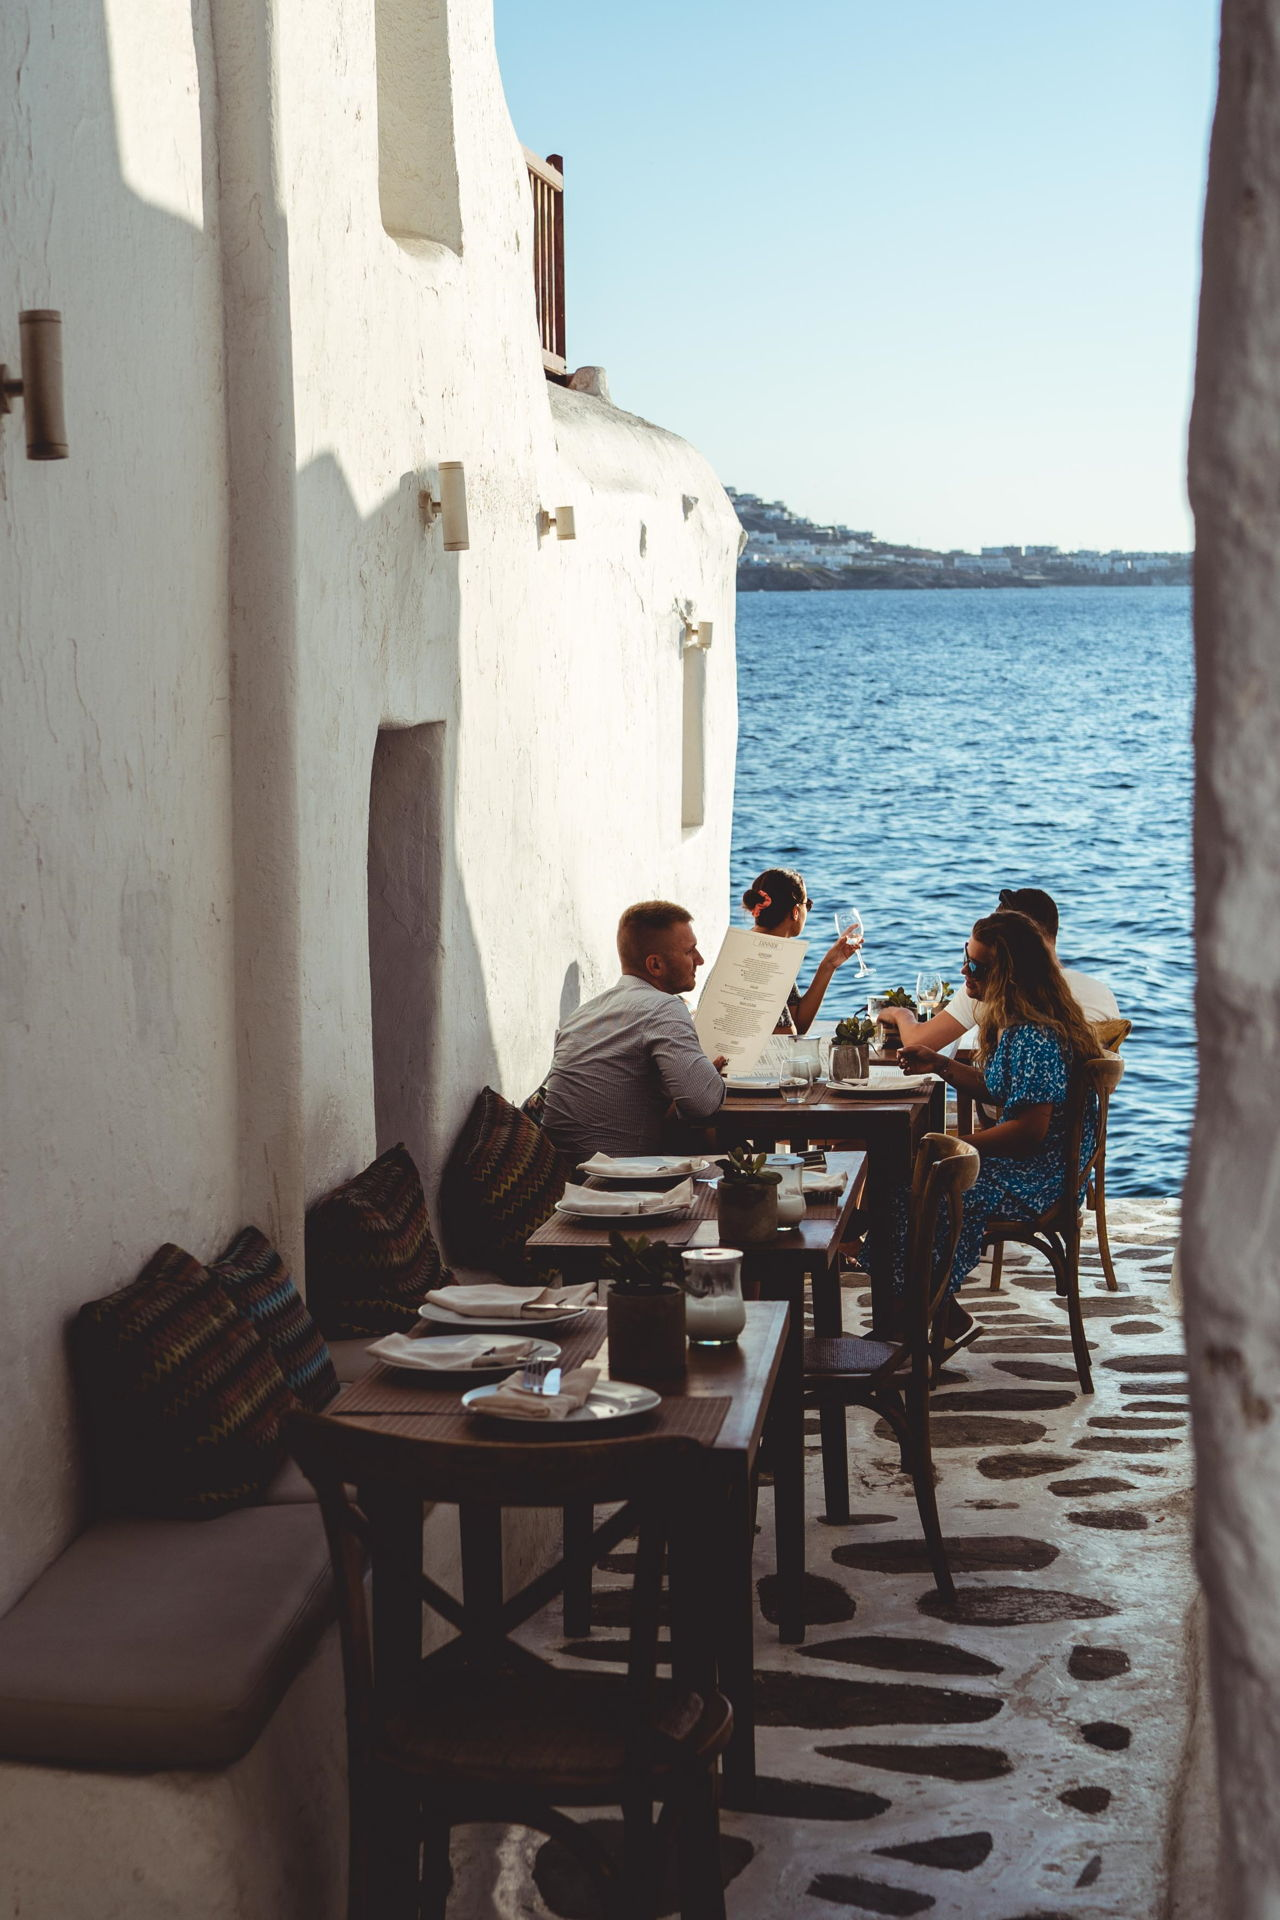 Dining in Cycladic alleyway by the sea in Mykonos.